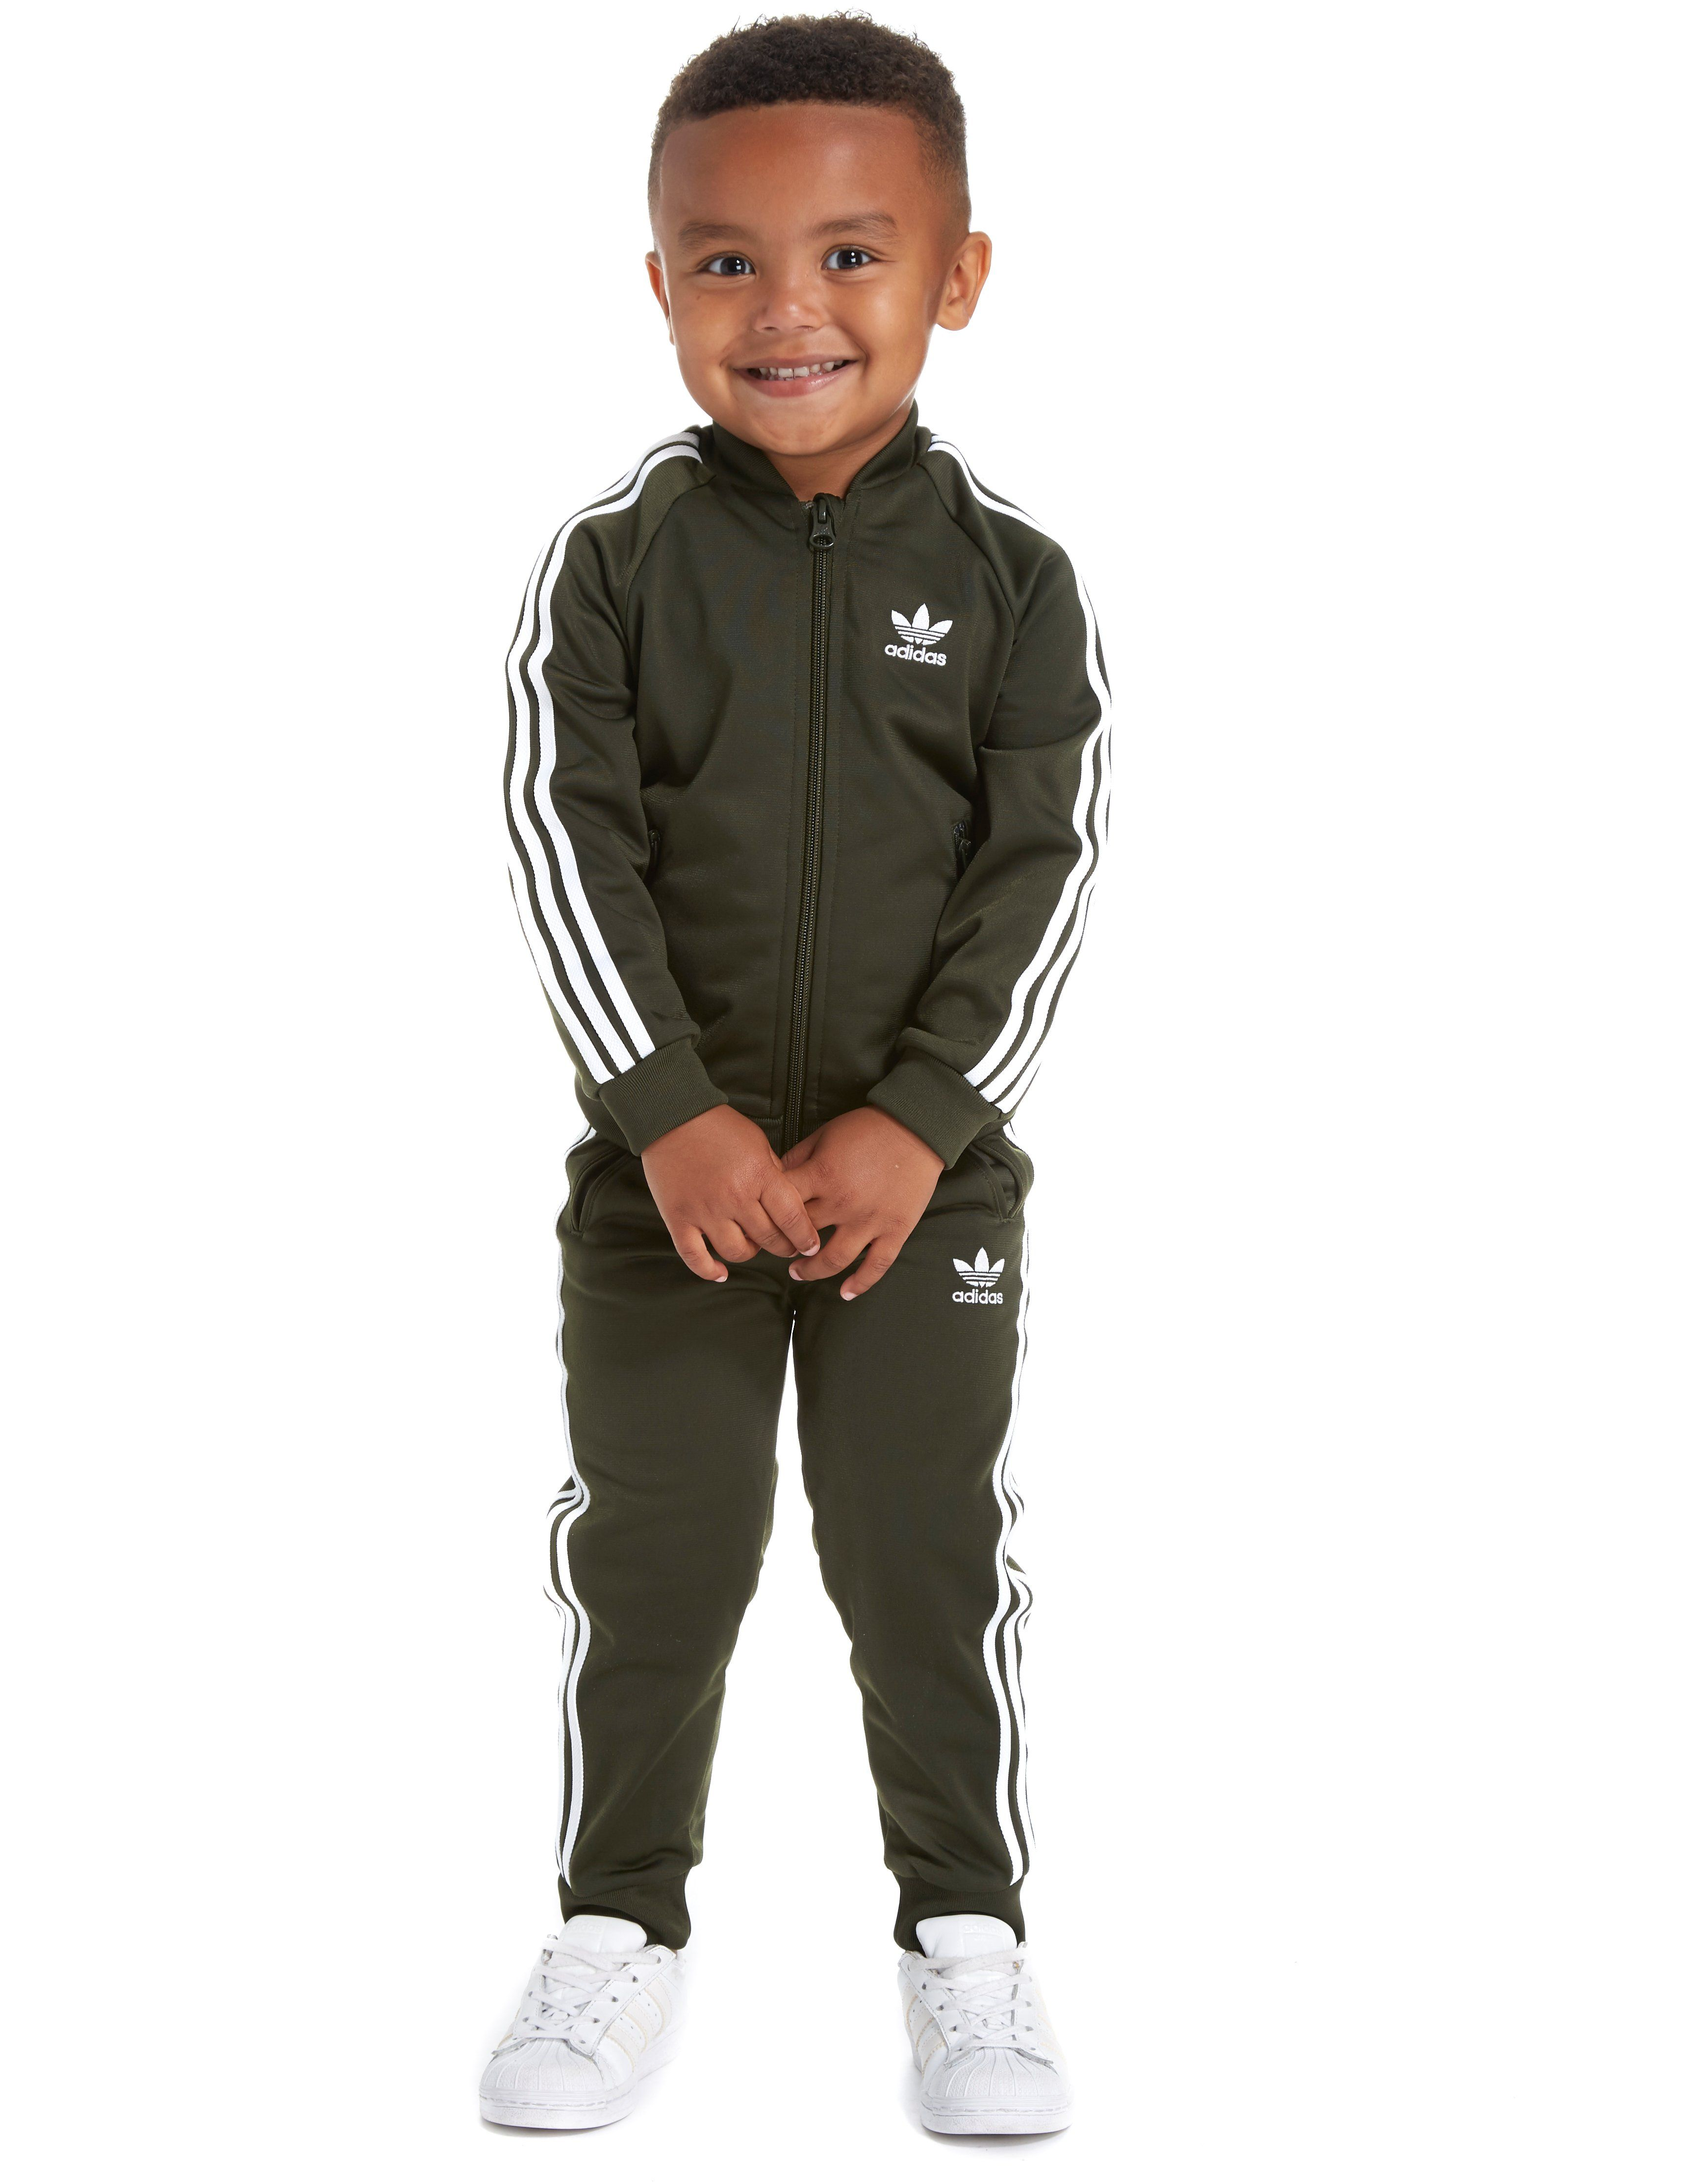 Green Adidas Tracksuit Boys Thehampsteadfactory Co Uk